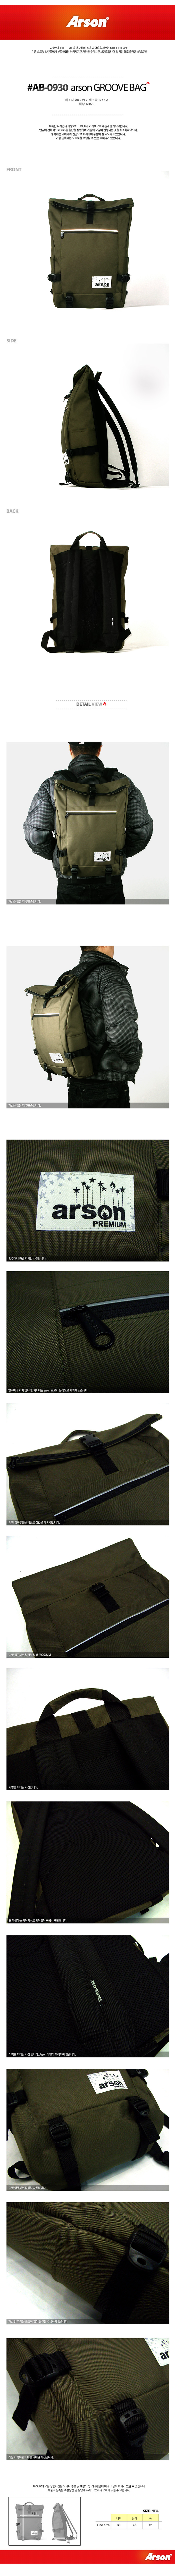 [ ARSON ] AB-0930 (Khaki)/Backpack School Bag